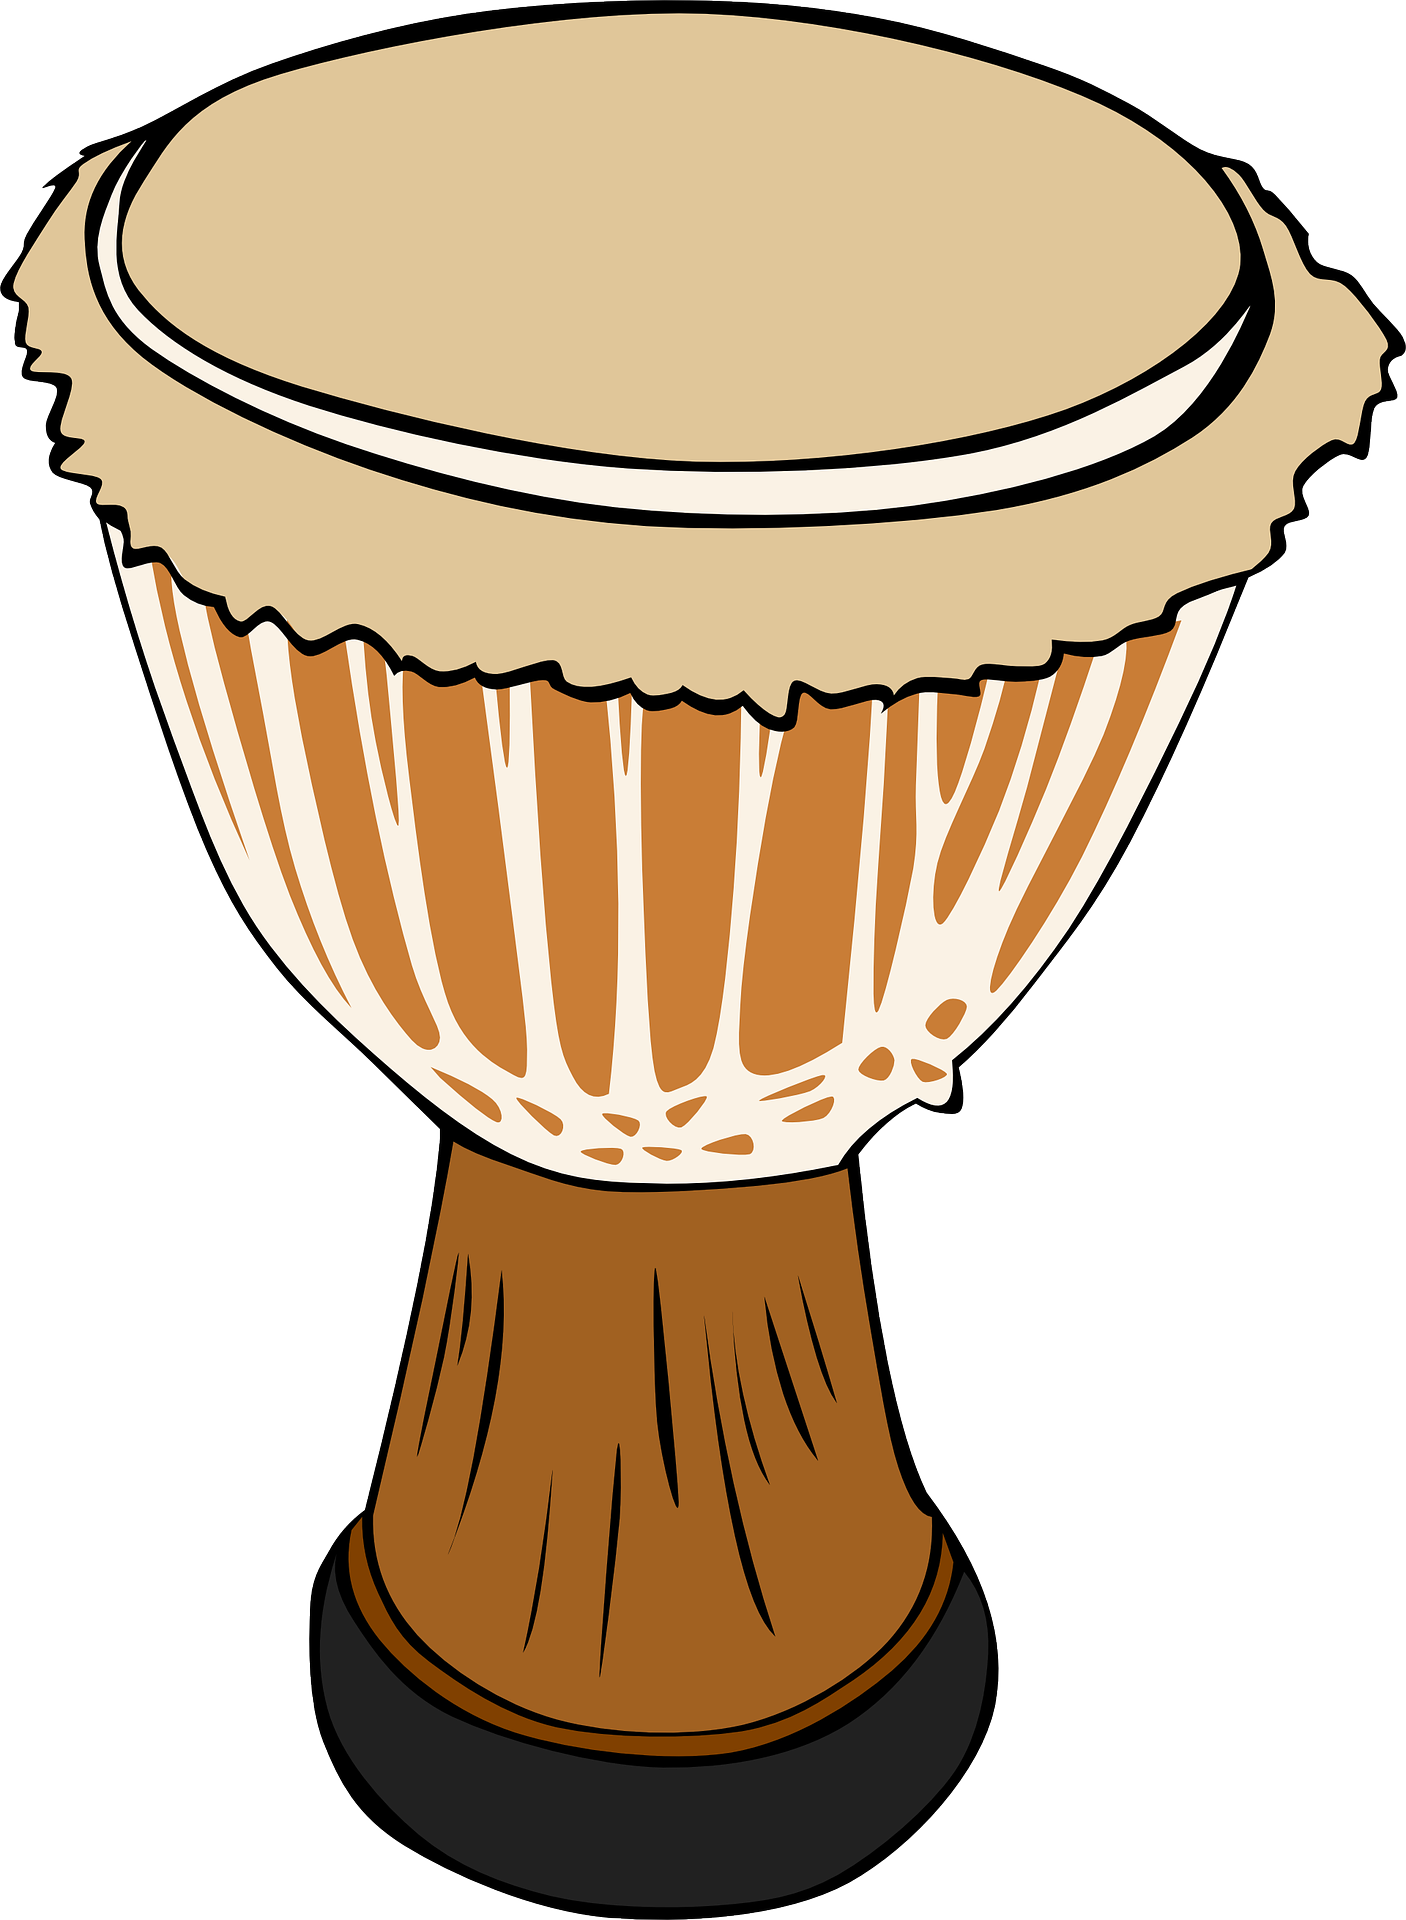 Clipart hand drumming. Percussion drums musical instruments